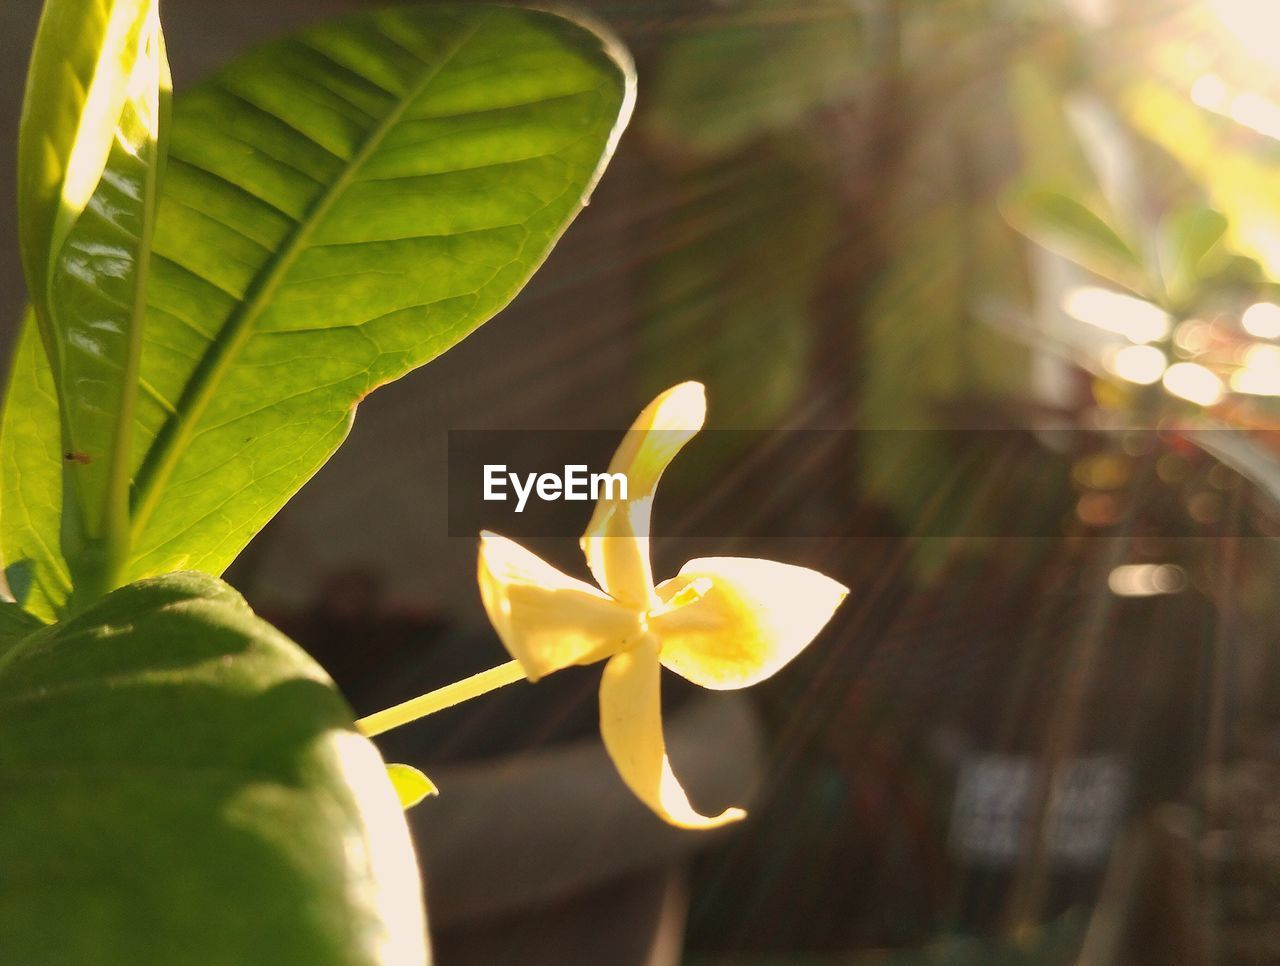 leaf, growth, nature, petal, beauty in nature, close-up, flower, fragility, plant, freshness, outdoors, frangipani, day, green color, no people, flower head, blooming